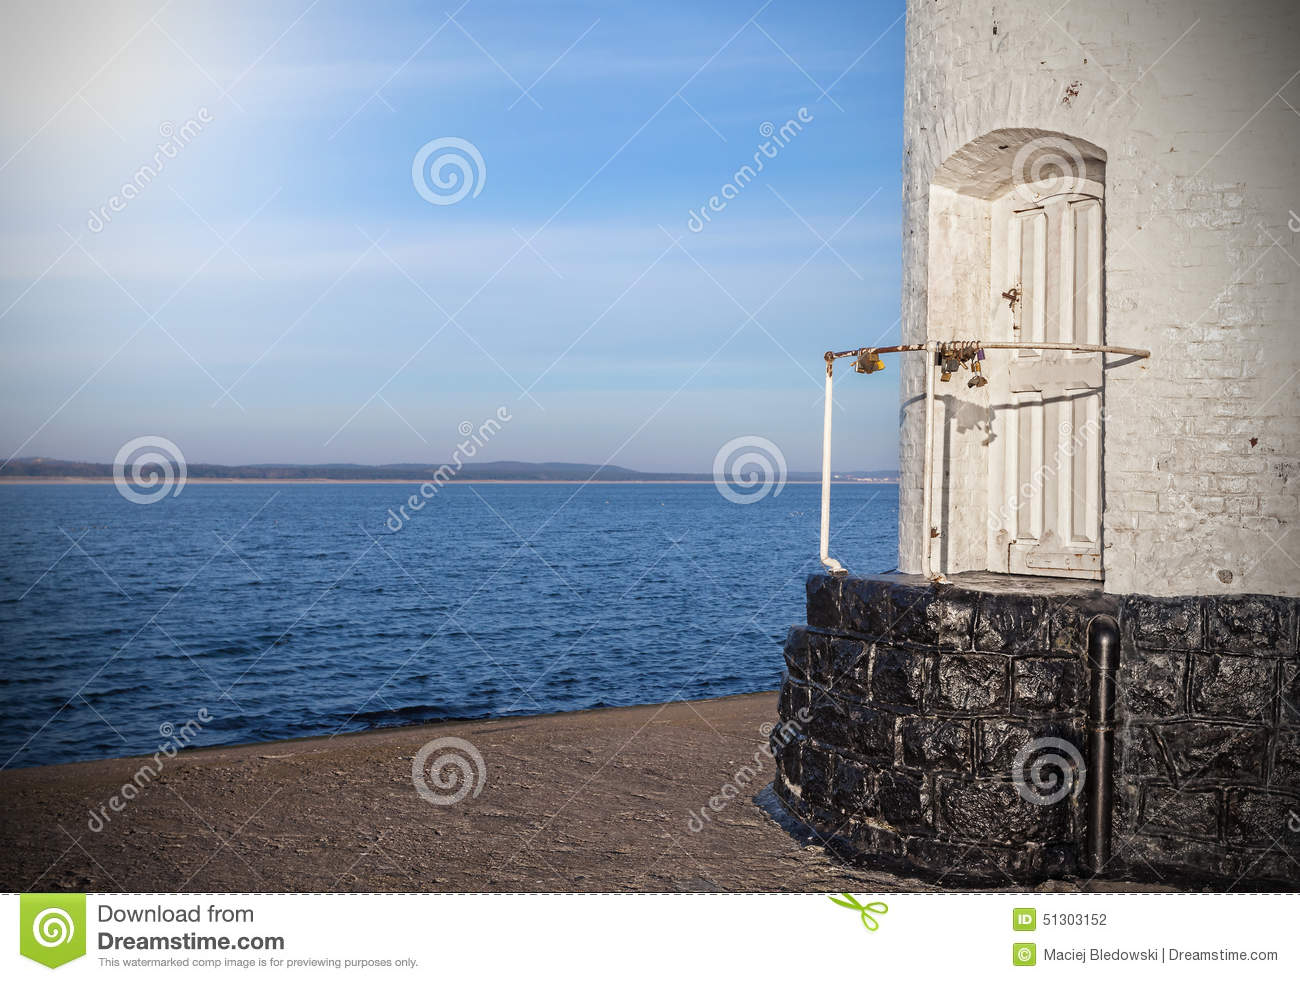 Royalty-Free Stock Photo & Mysterious Wooden Door To The Old Lighthouse. Stock Photo - Image ... Pezcame.Com